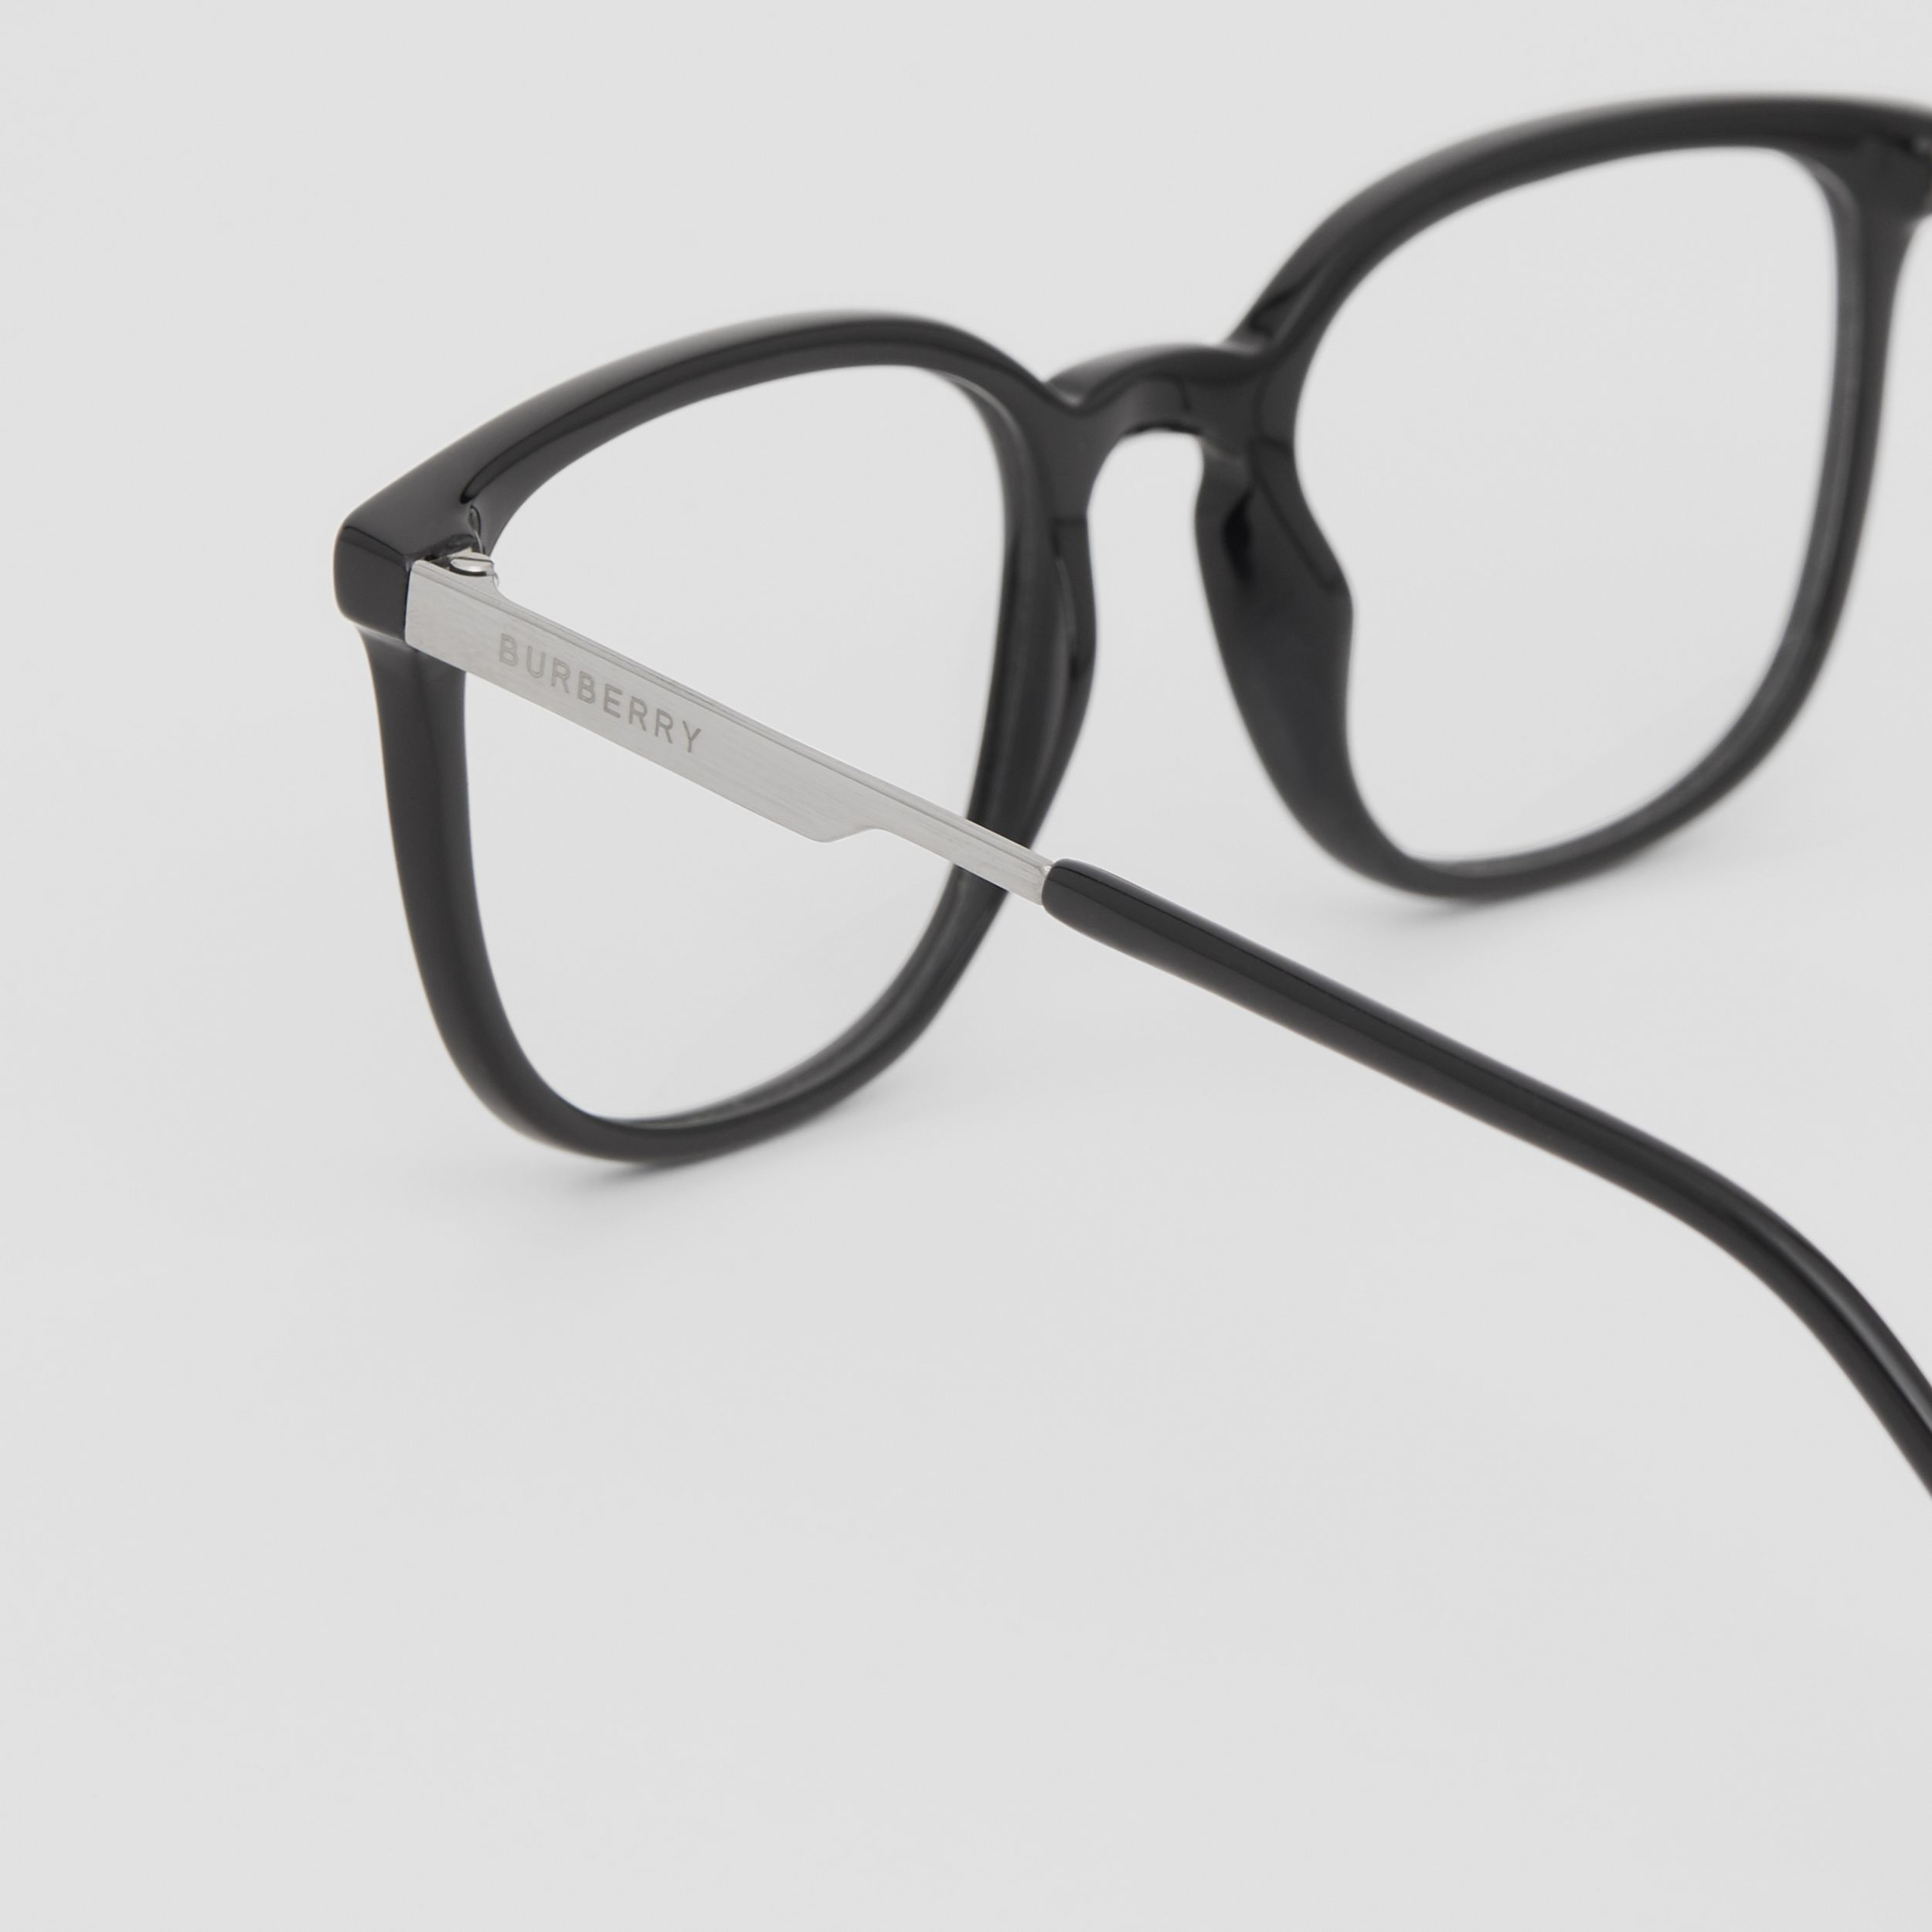 Square Optical Frames in Black | Burberry - 2